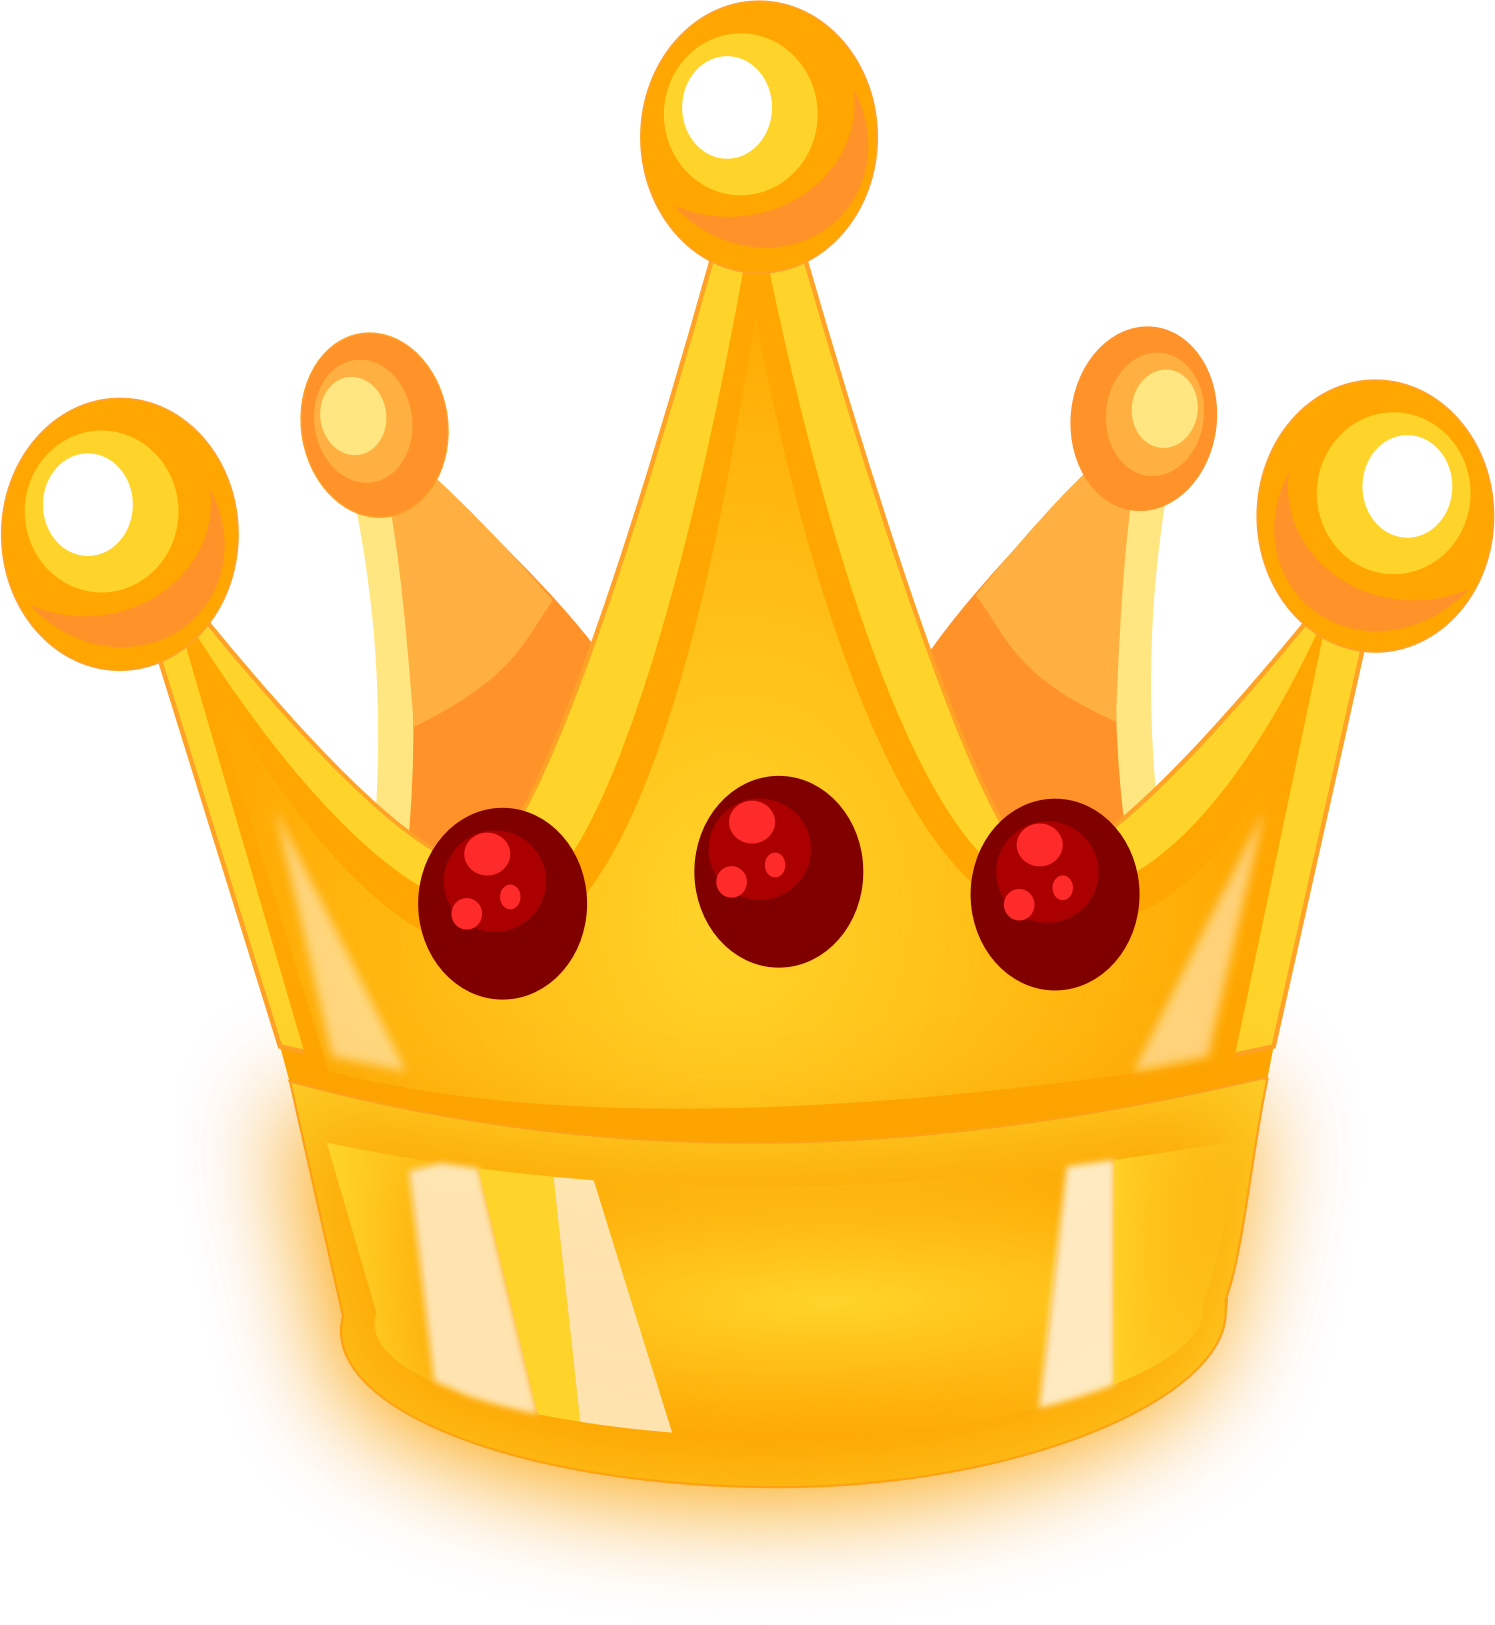 Clipart - Royal Crown with no background clip art royalty free library